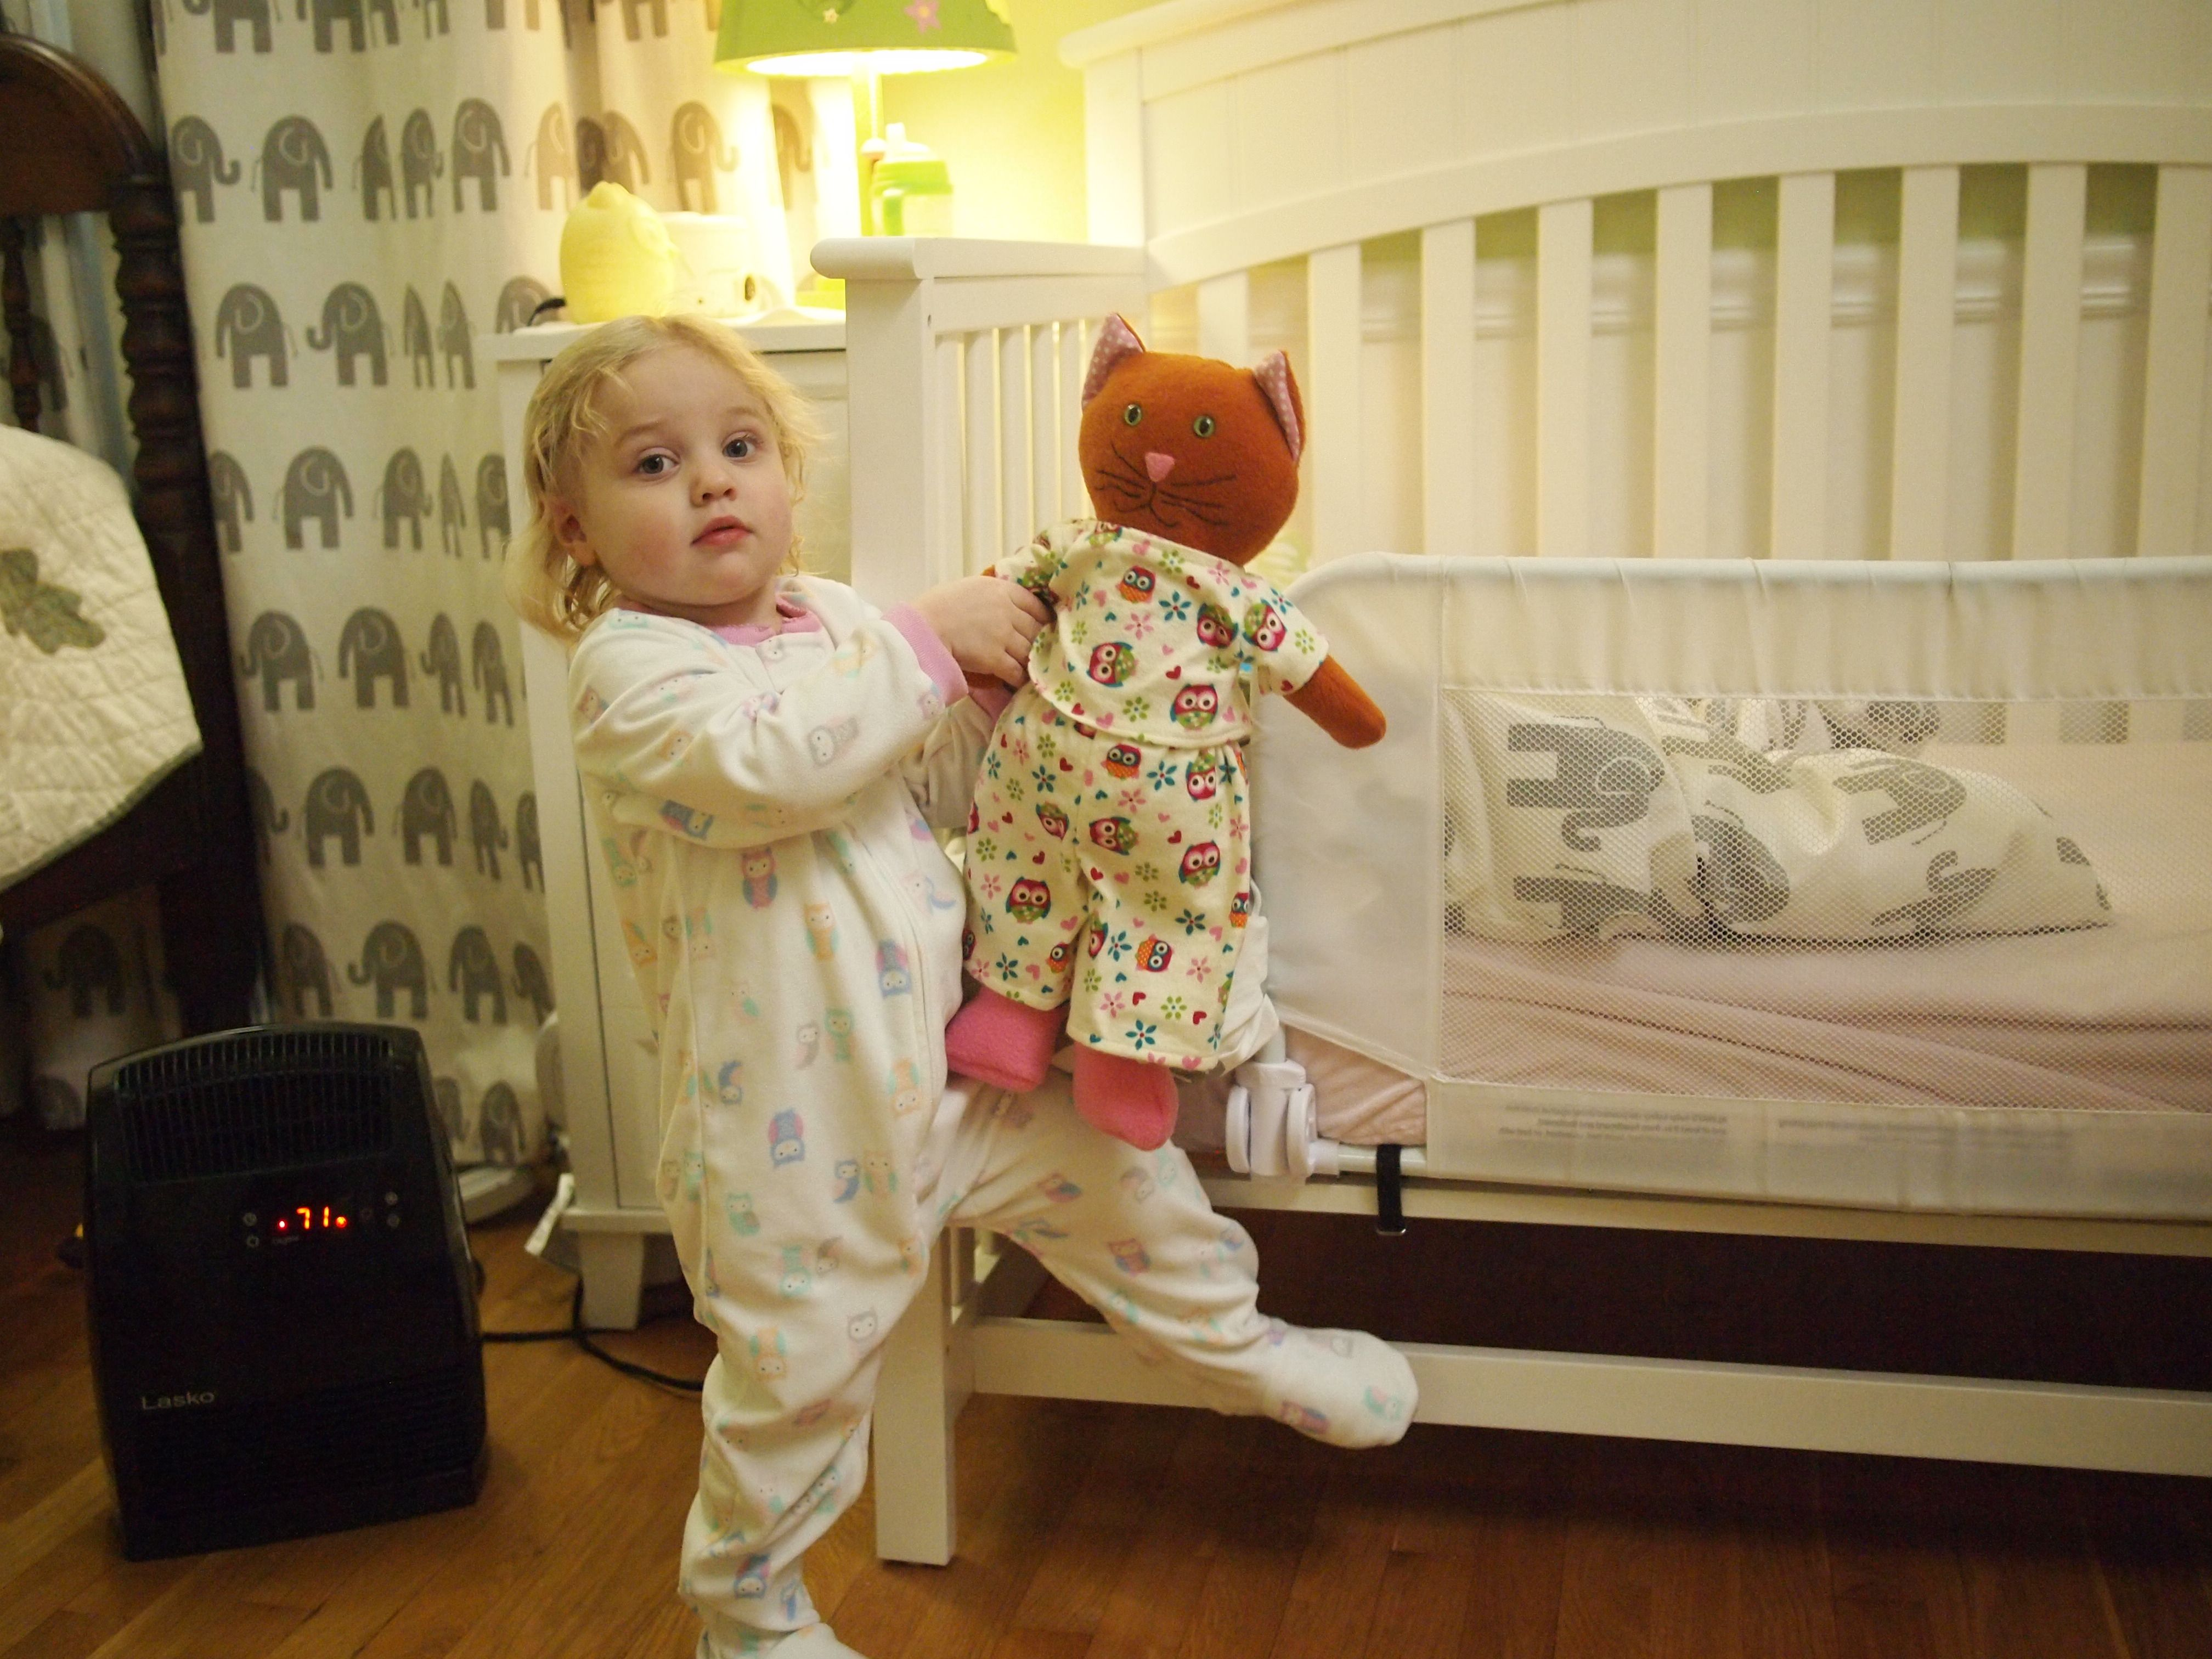 adorable Pip the Cat, being put to bed by an even more adorable little girl